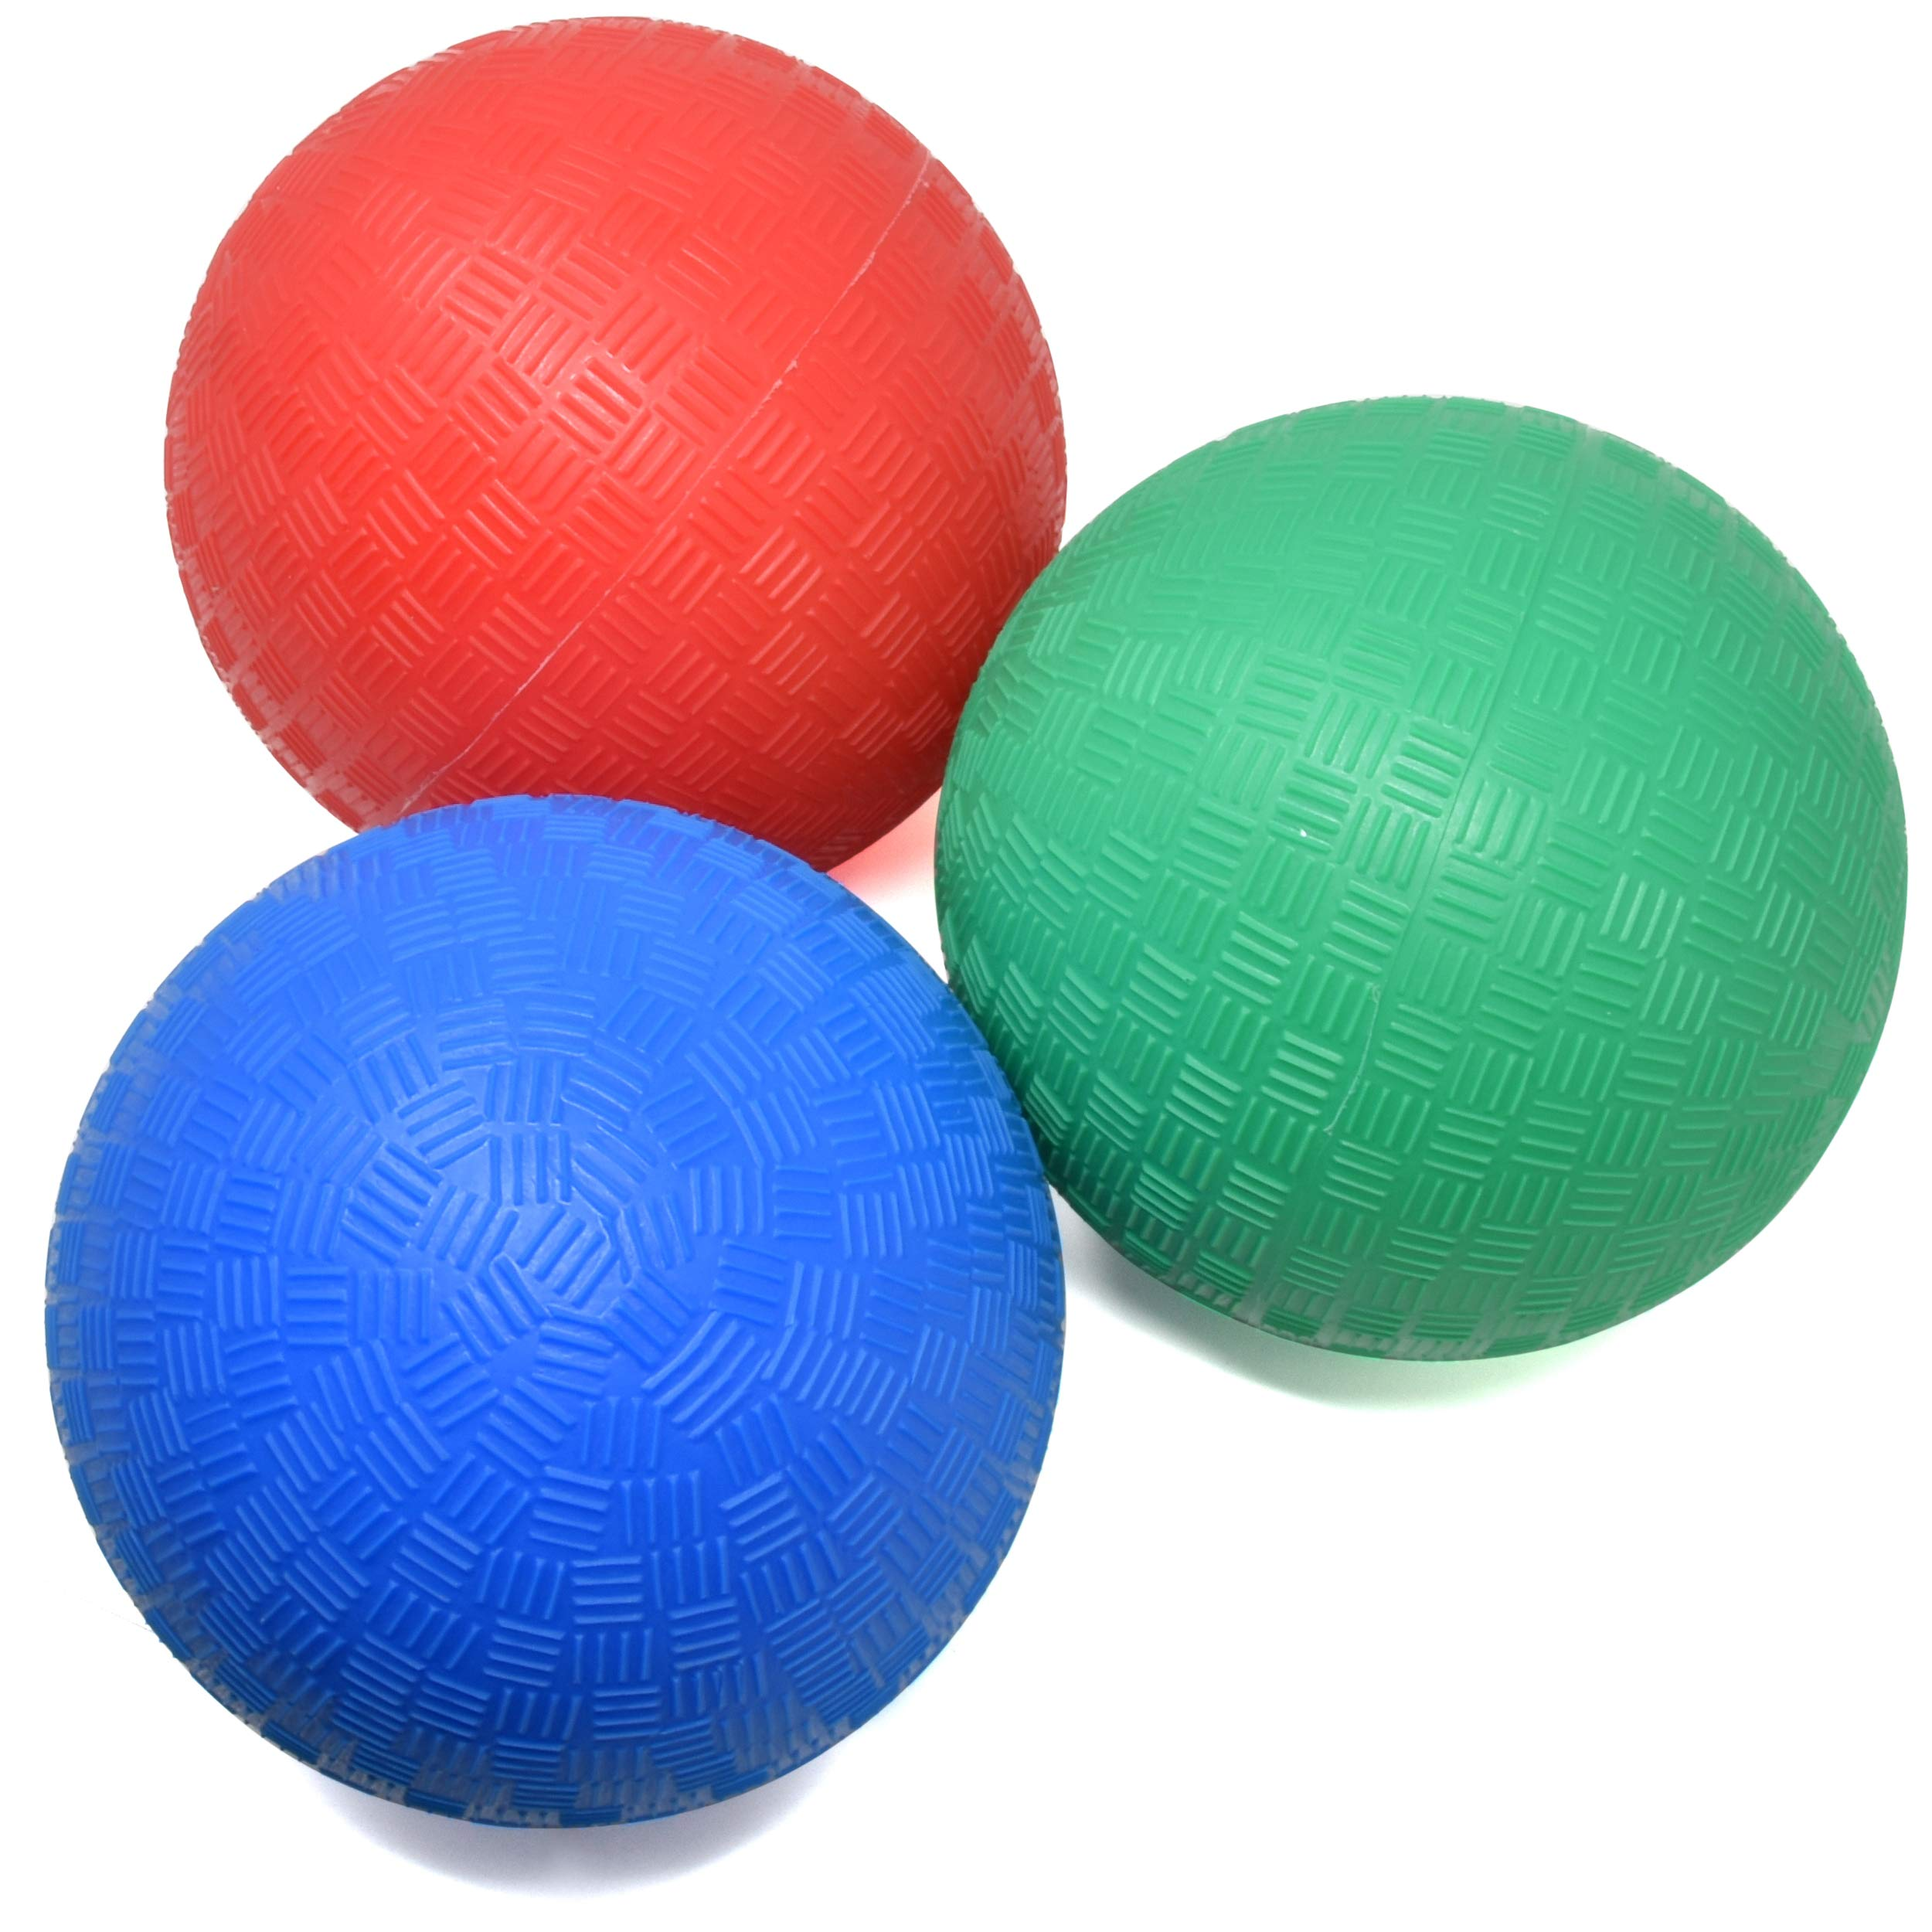 CDM product Number 1 in Gadgets 5 Inch Playground Balls, Set of 3 Mini Sports Balls for Soft Play, Rubber Dodge Balls for Indoor and Outdoor Use, Inflated Bouncy Easy Grip for Kids and Toddlers big image